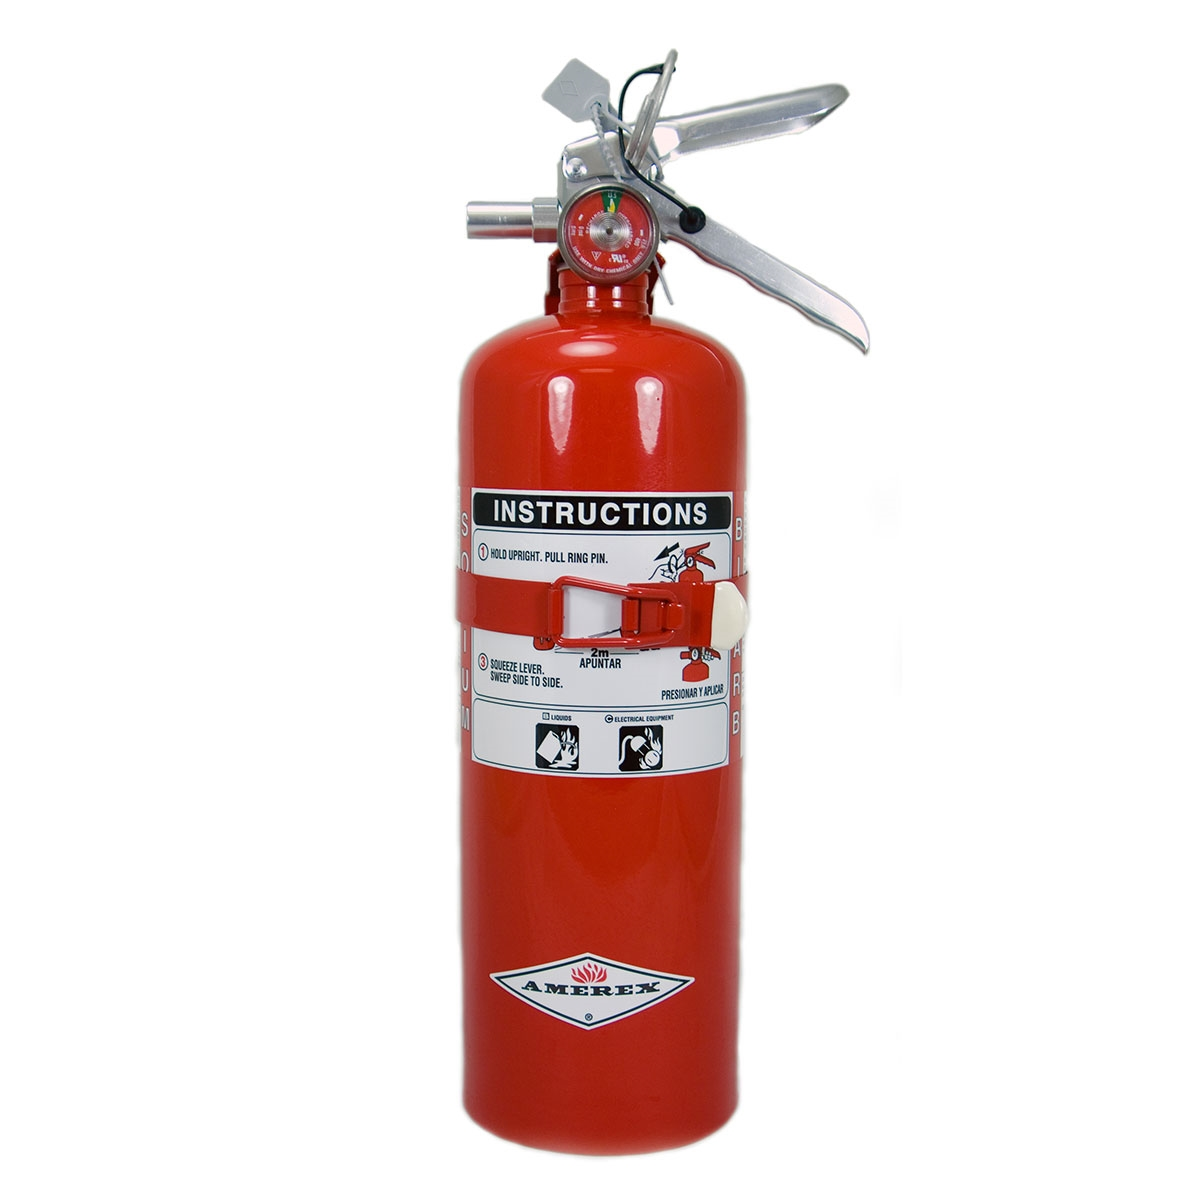 2.5 lb 'ABC' Dry Chemical Fire Extinguisher for vehicles